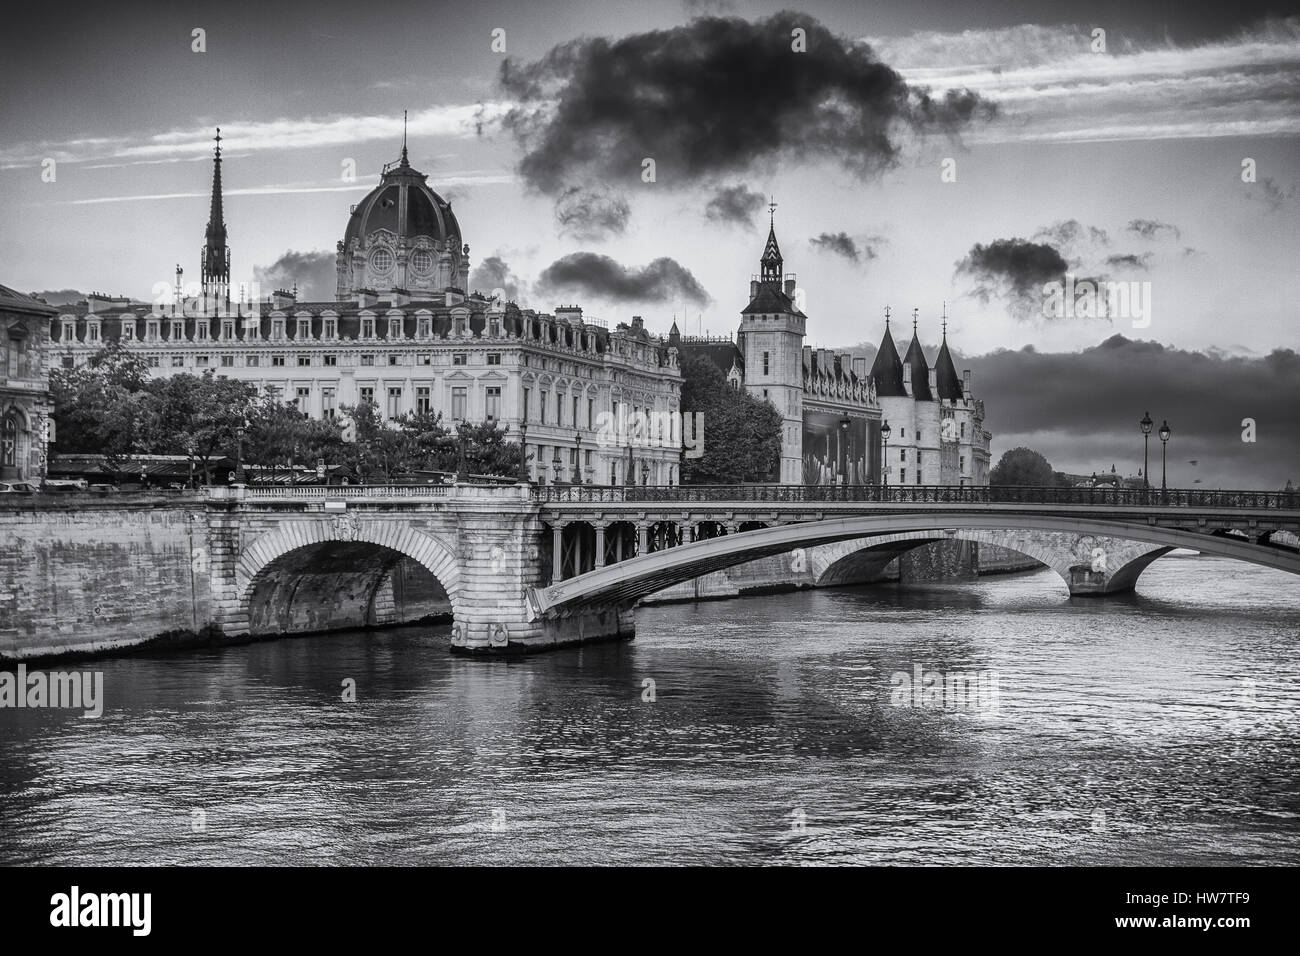 PARIS, FRANCE- SEPTEMBER 30, 2016: Looking towards Ile de Cite from Pont Louis Philippe over the Seine. - Stock Image